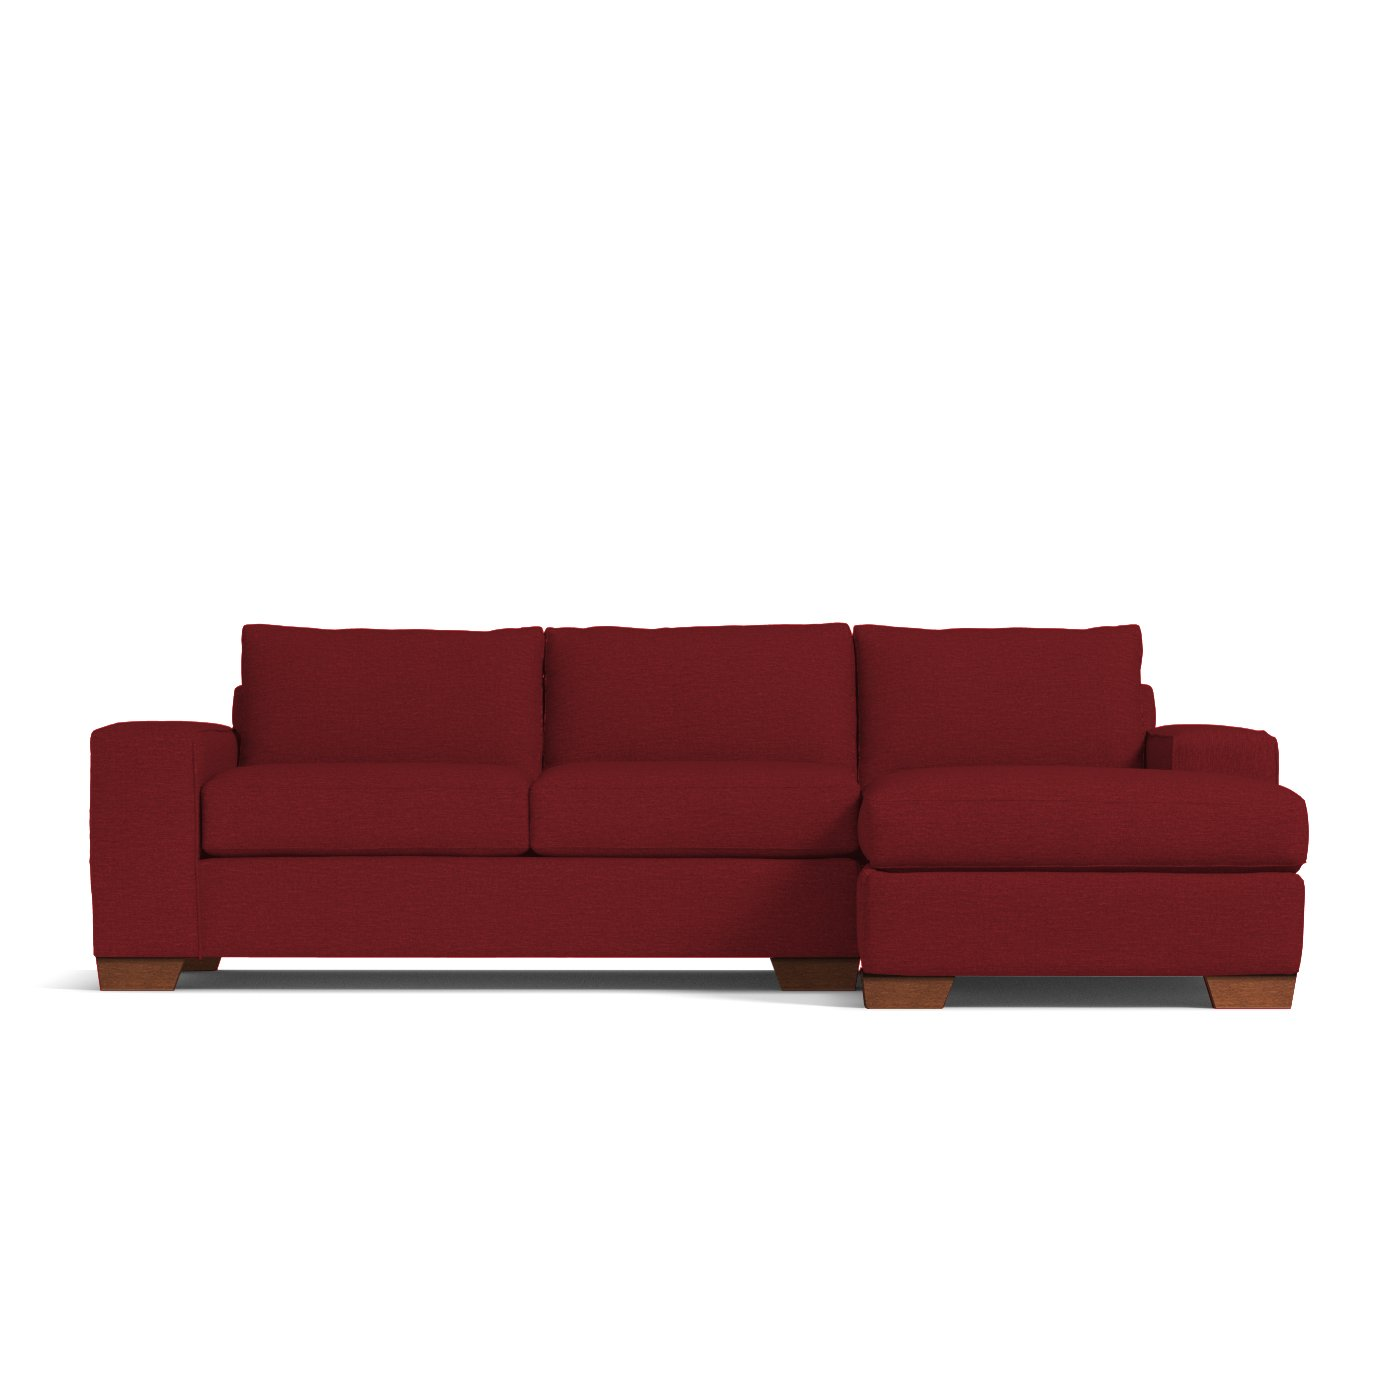 Melrose 2pc Sectional Sofa CHOICE OF FABRICS – Apt2B